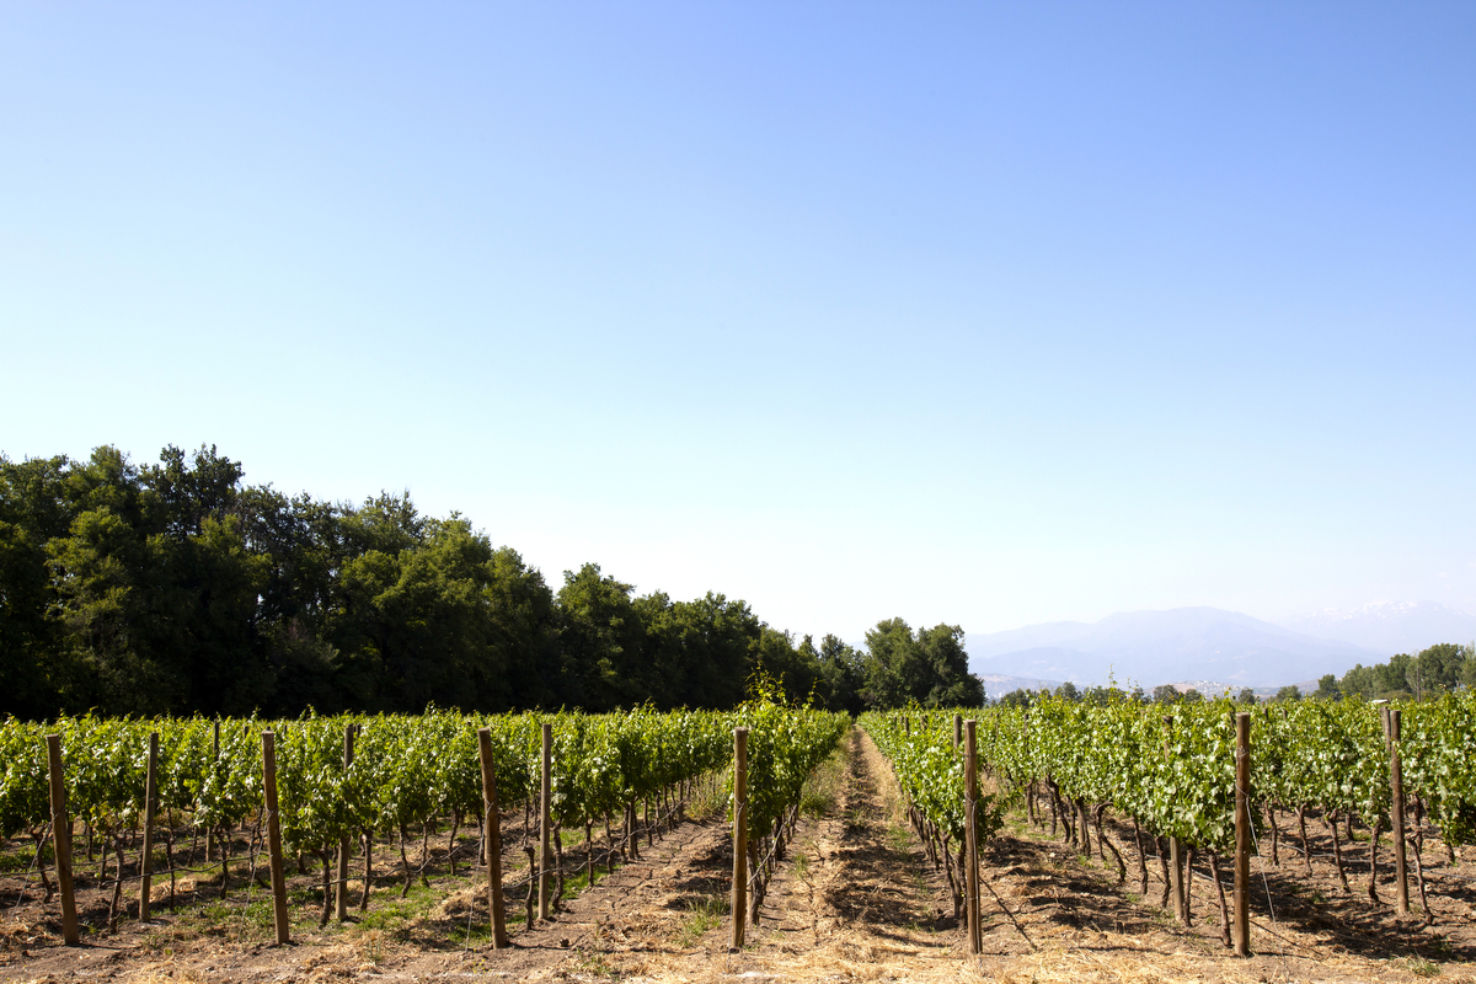 Maipo valley vineyards